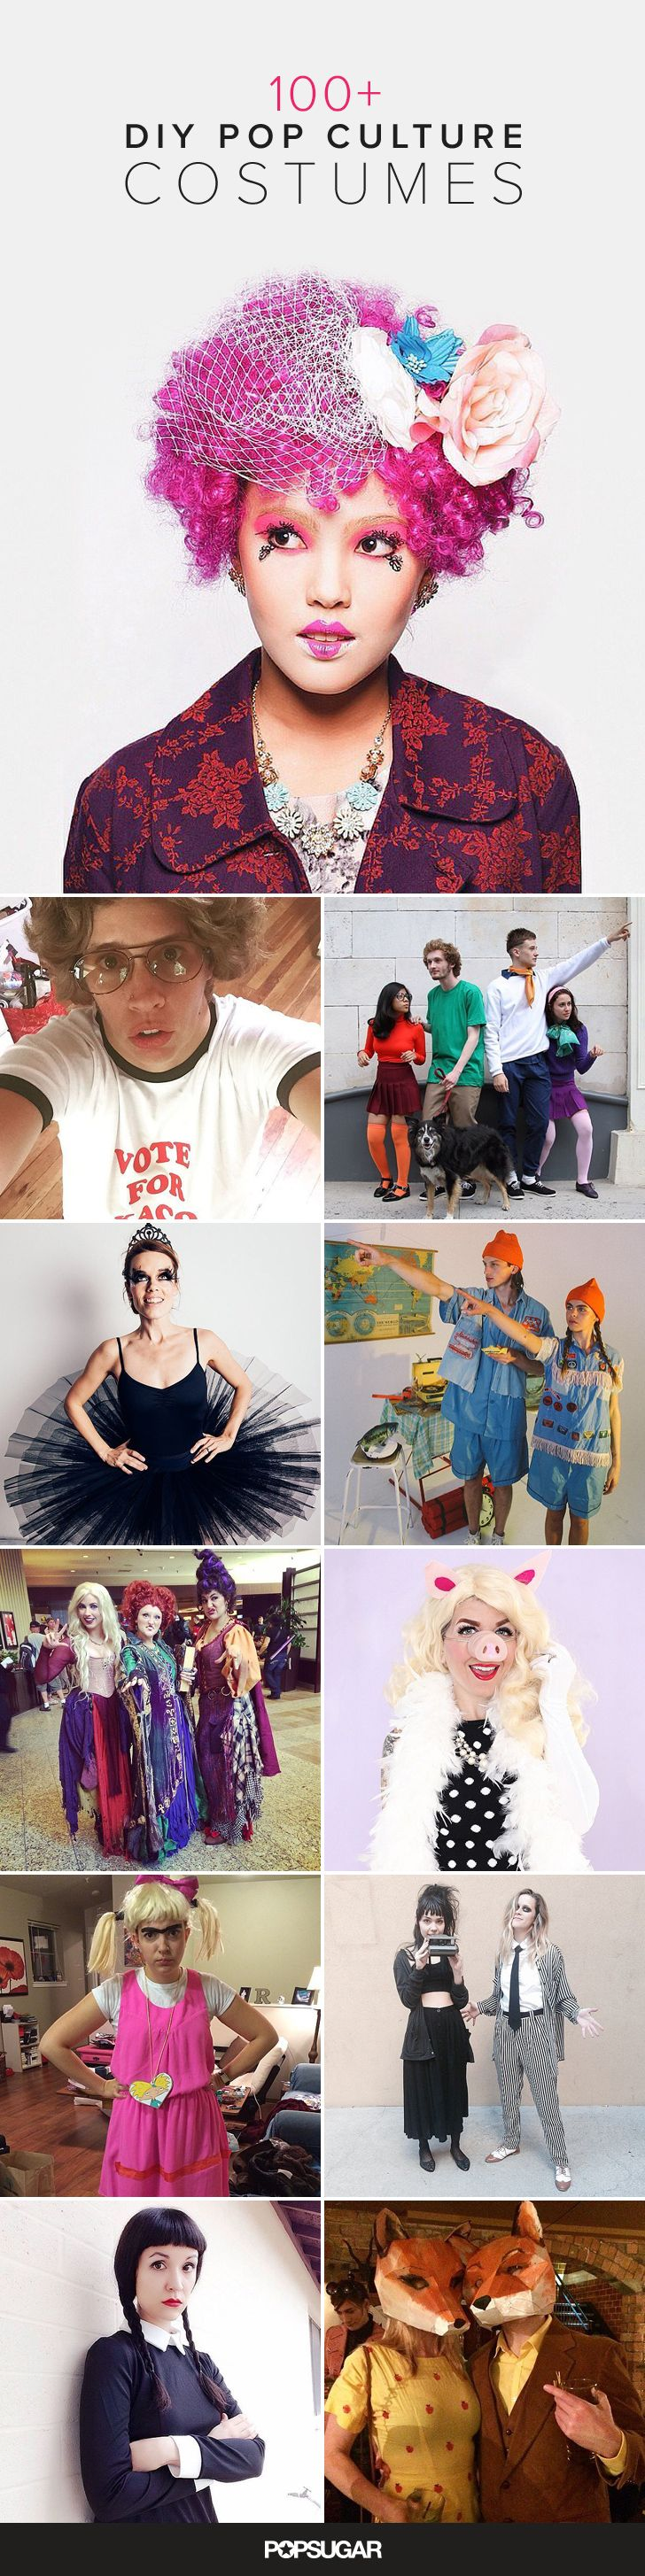 The easiest place to draw inspiration for a Halloween costumes this year is right in front of you — your TV and computer screens. Take a cue from pop culture and dress up like your favorite characters from movies and shows.